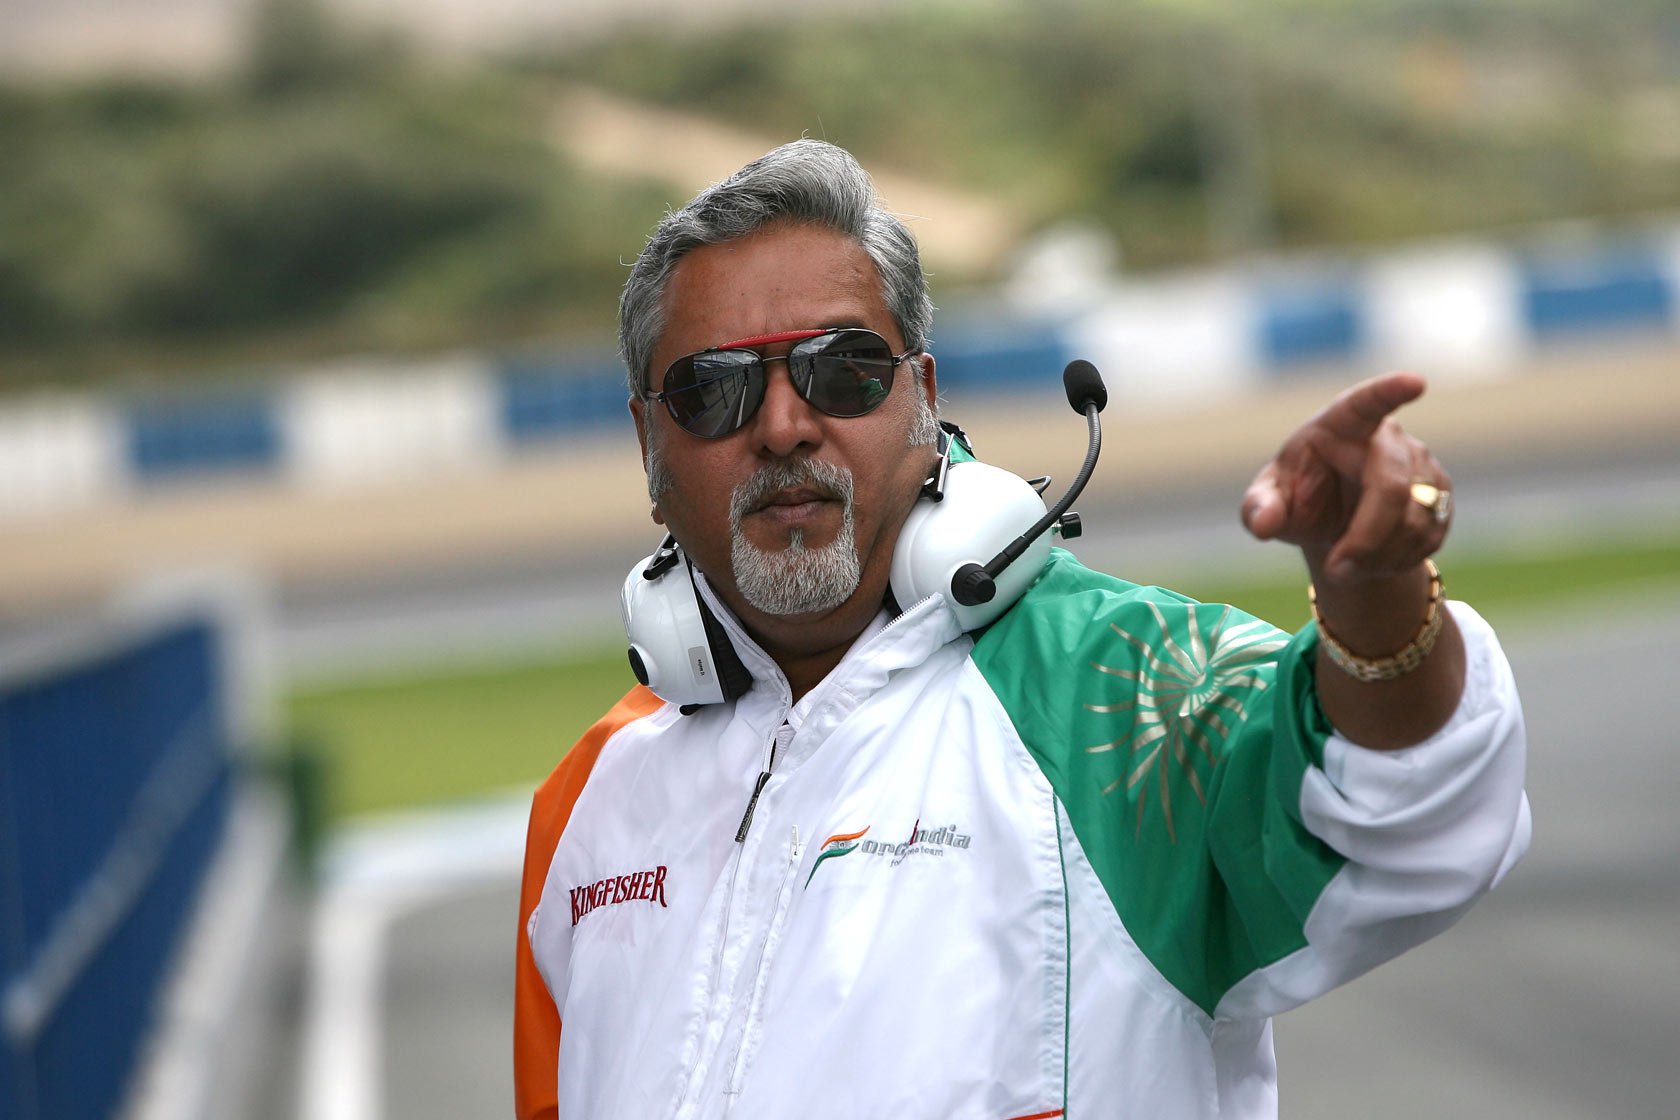 Vijay Mallya: The rise and fall of 'the king of good times'